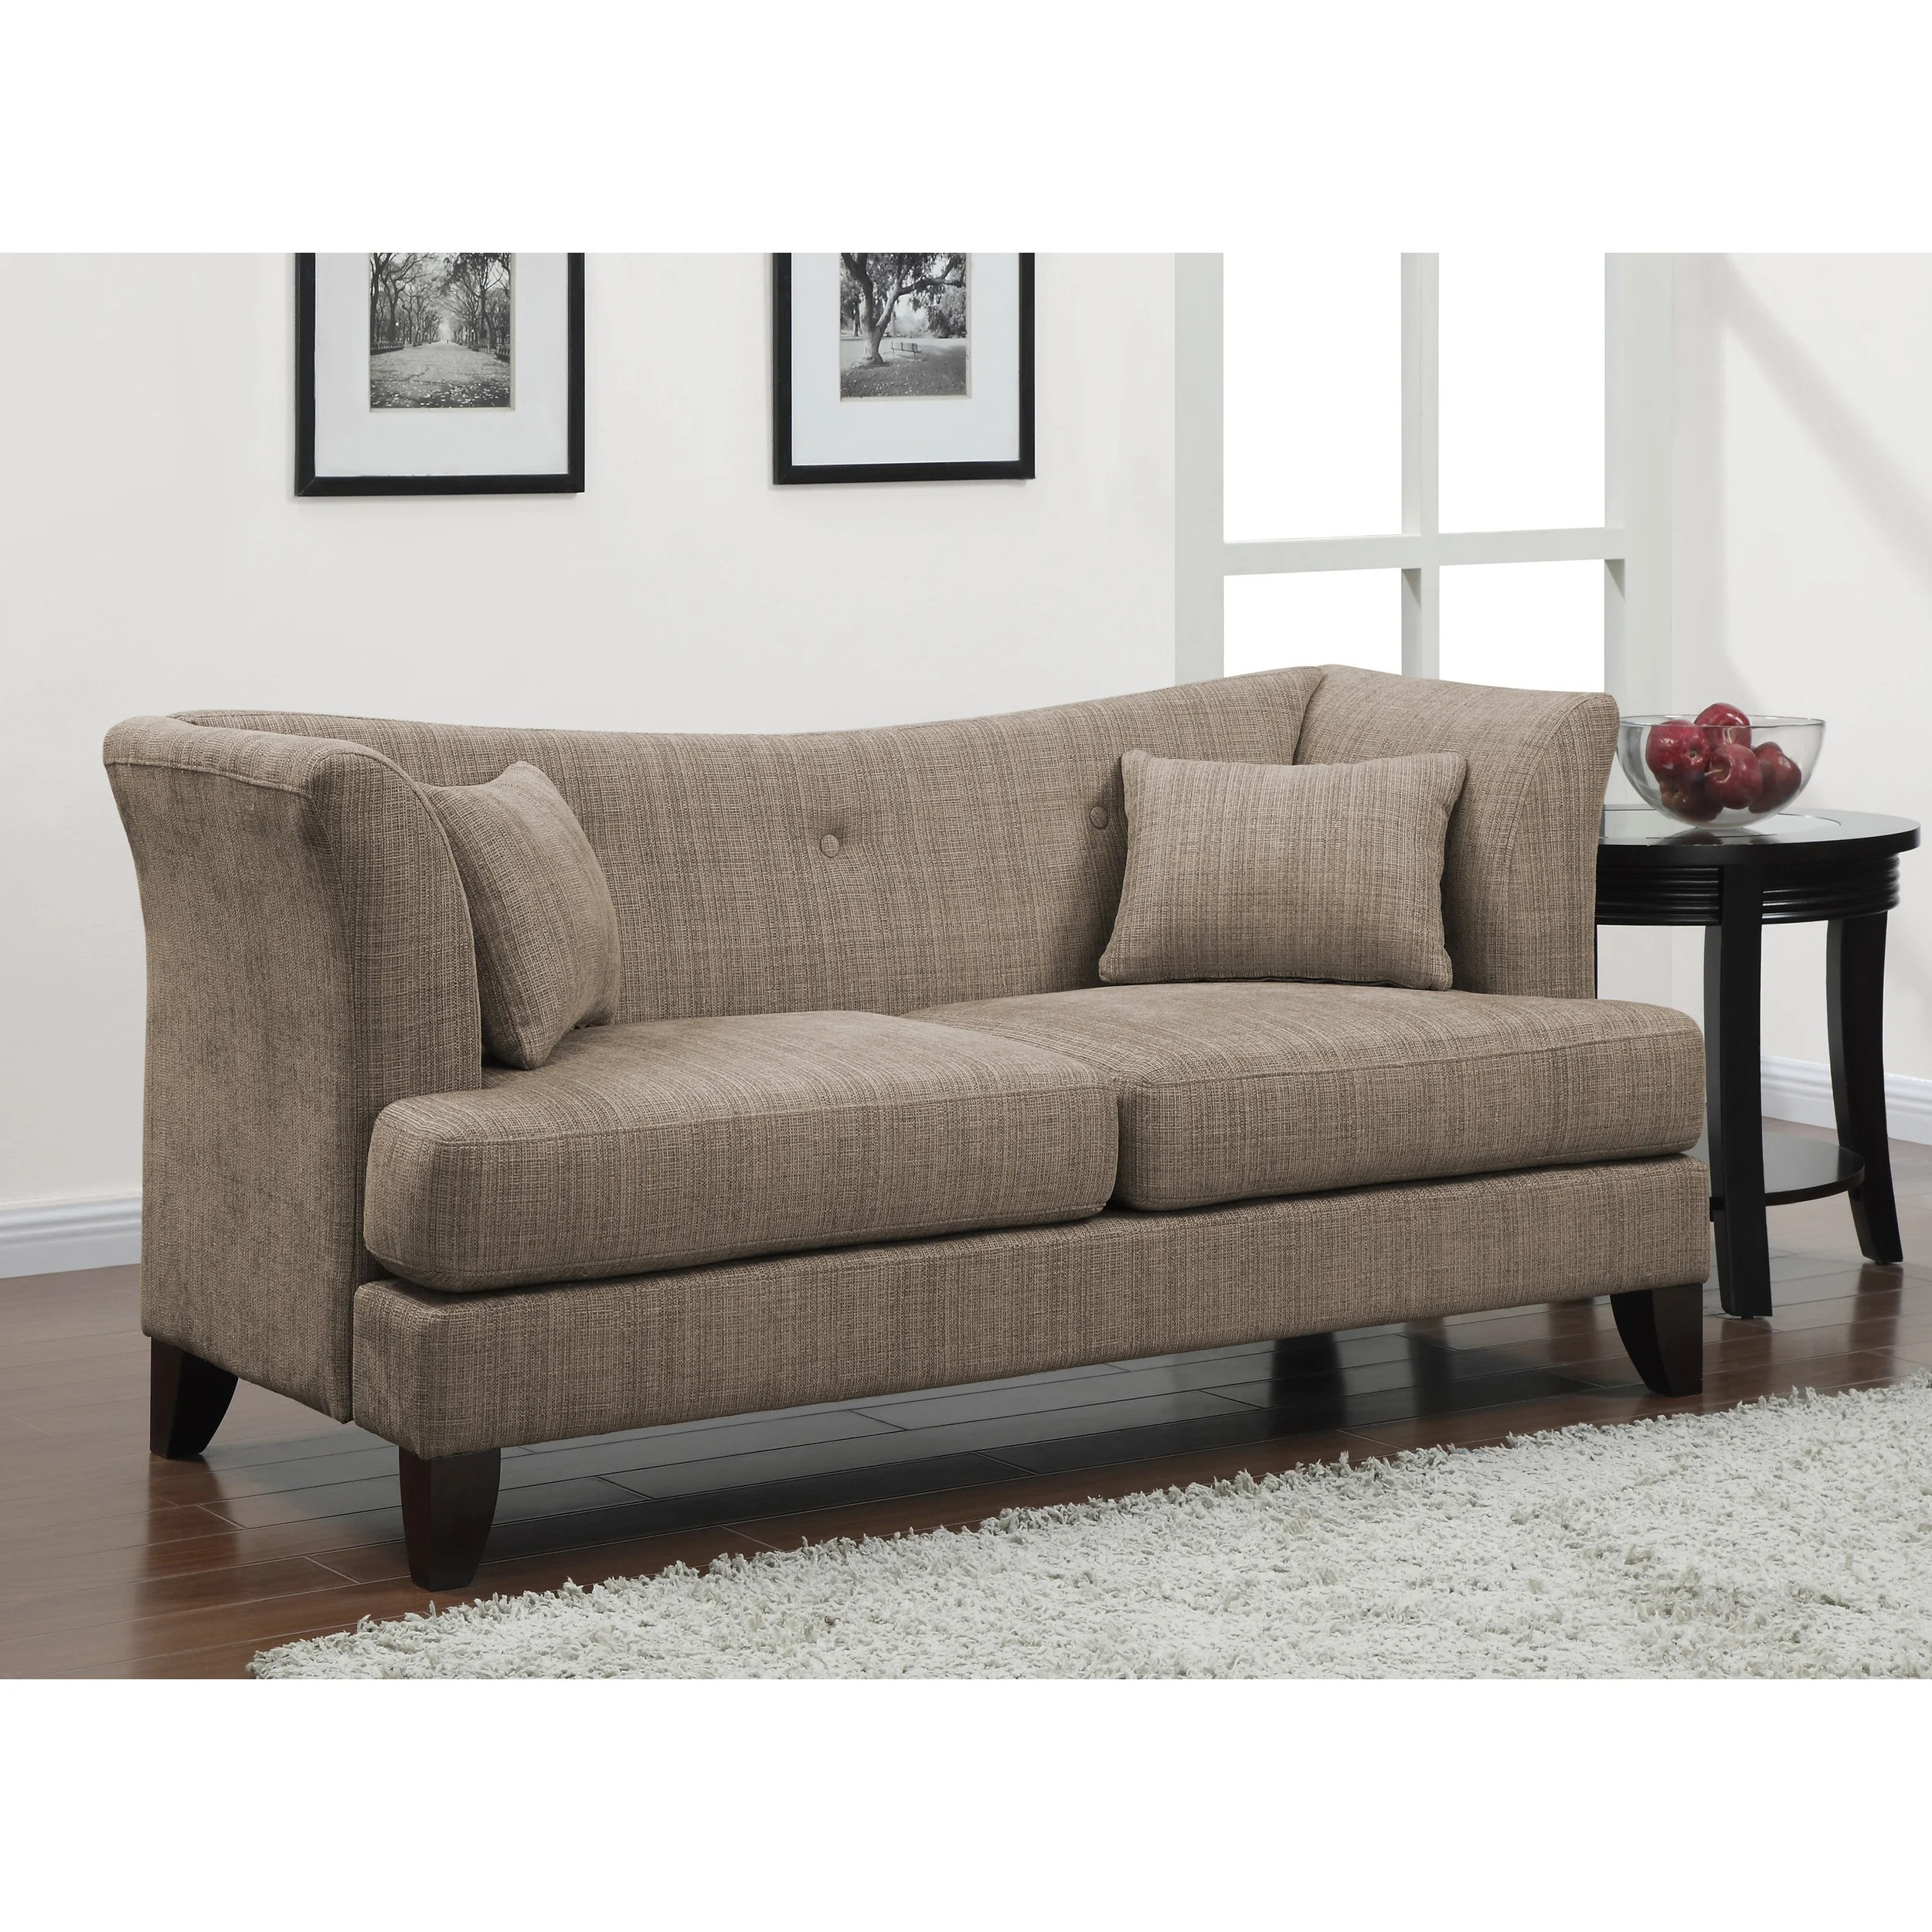 modern twine curved arm sofa poliform dune overstock shopping great